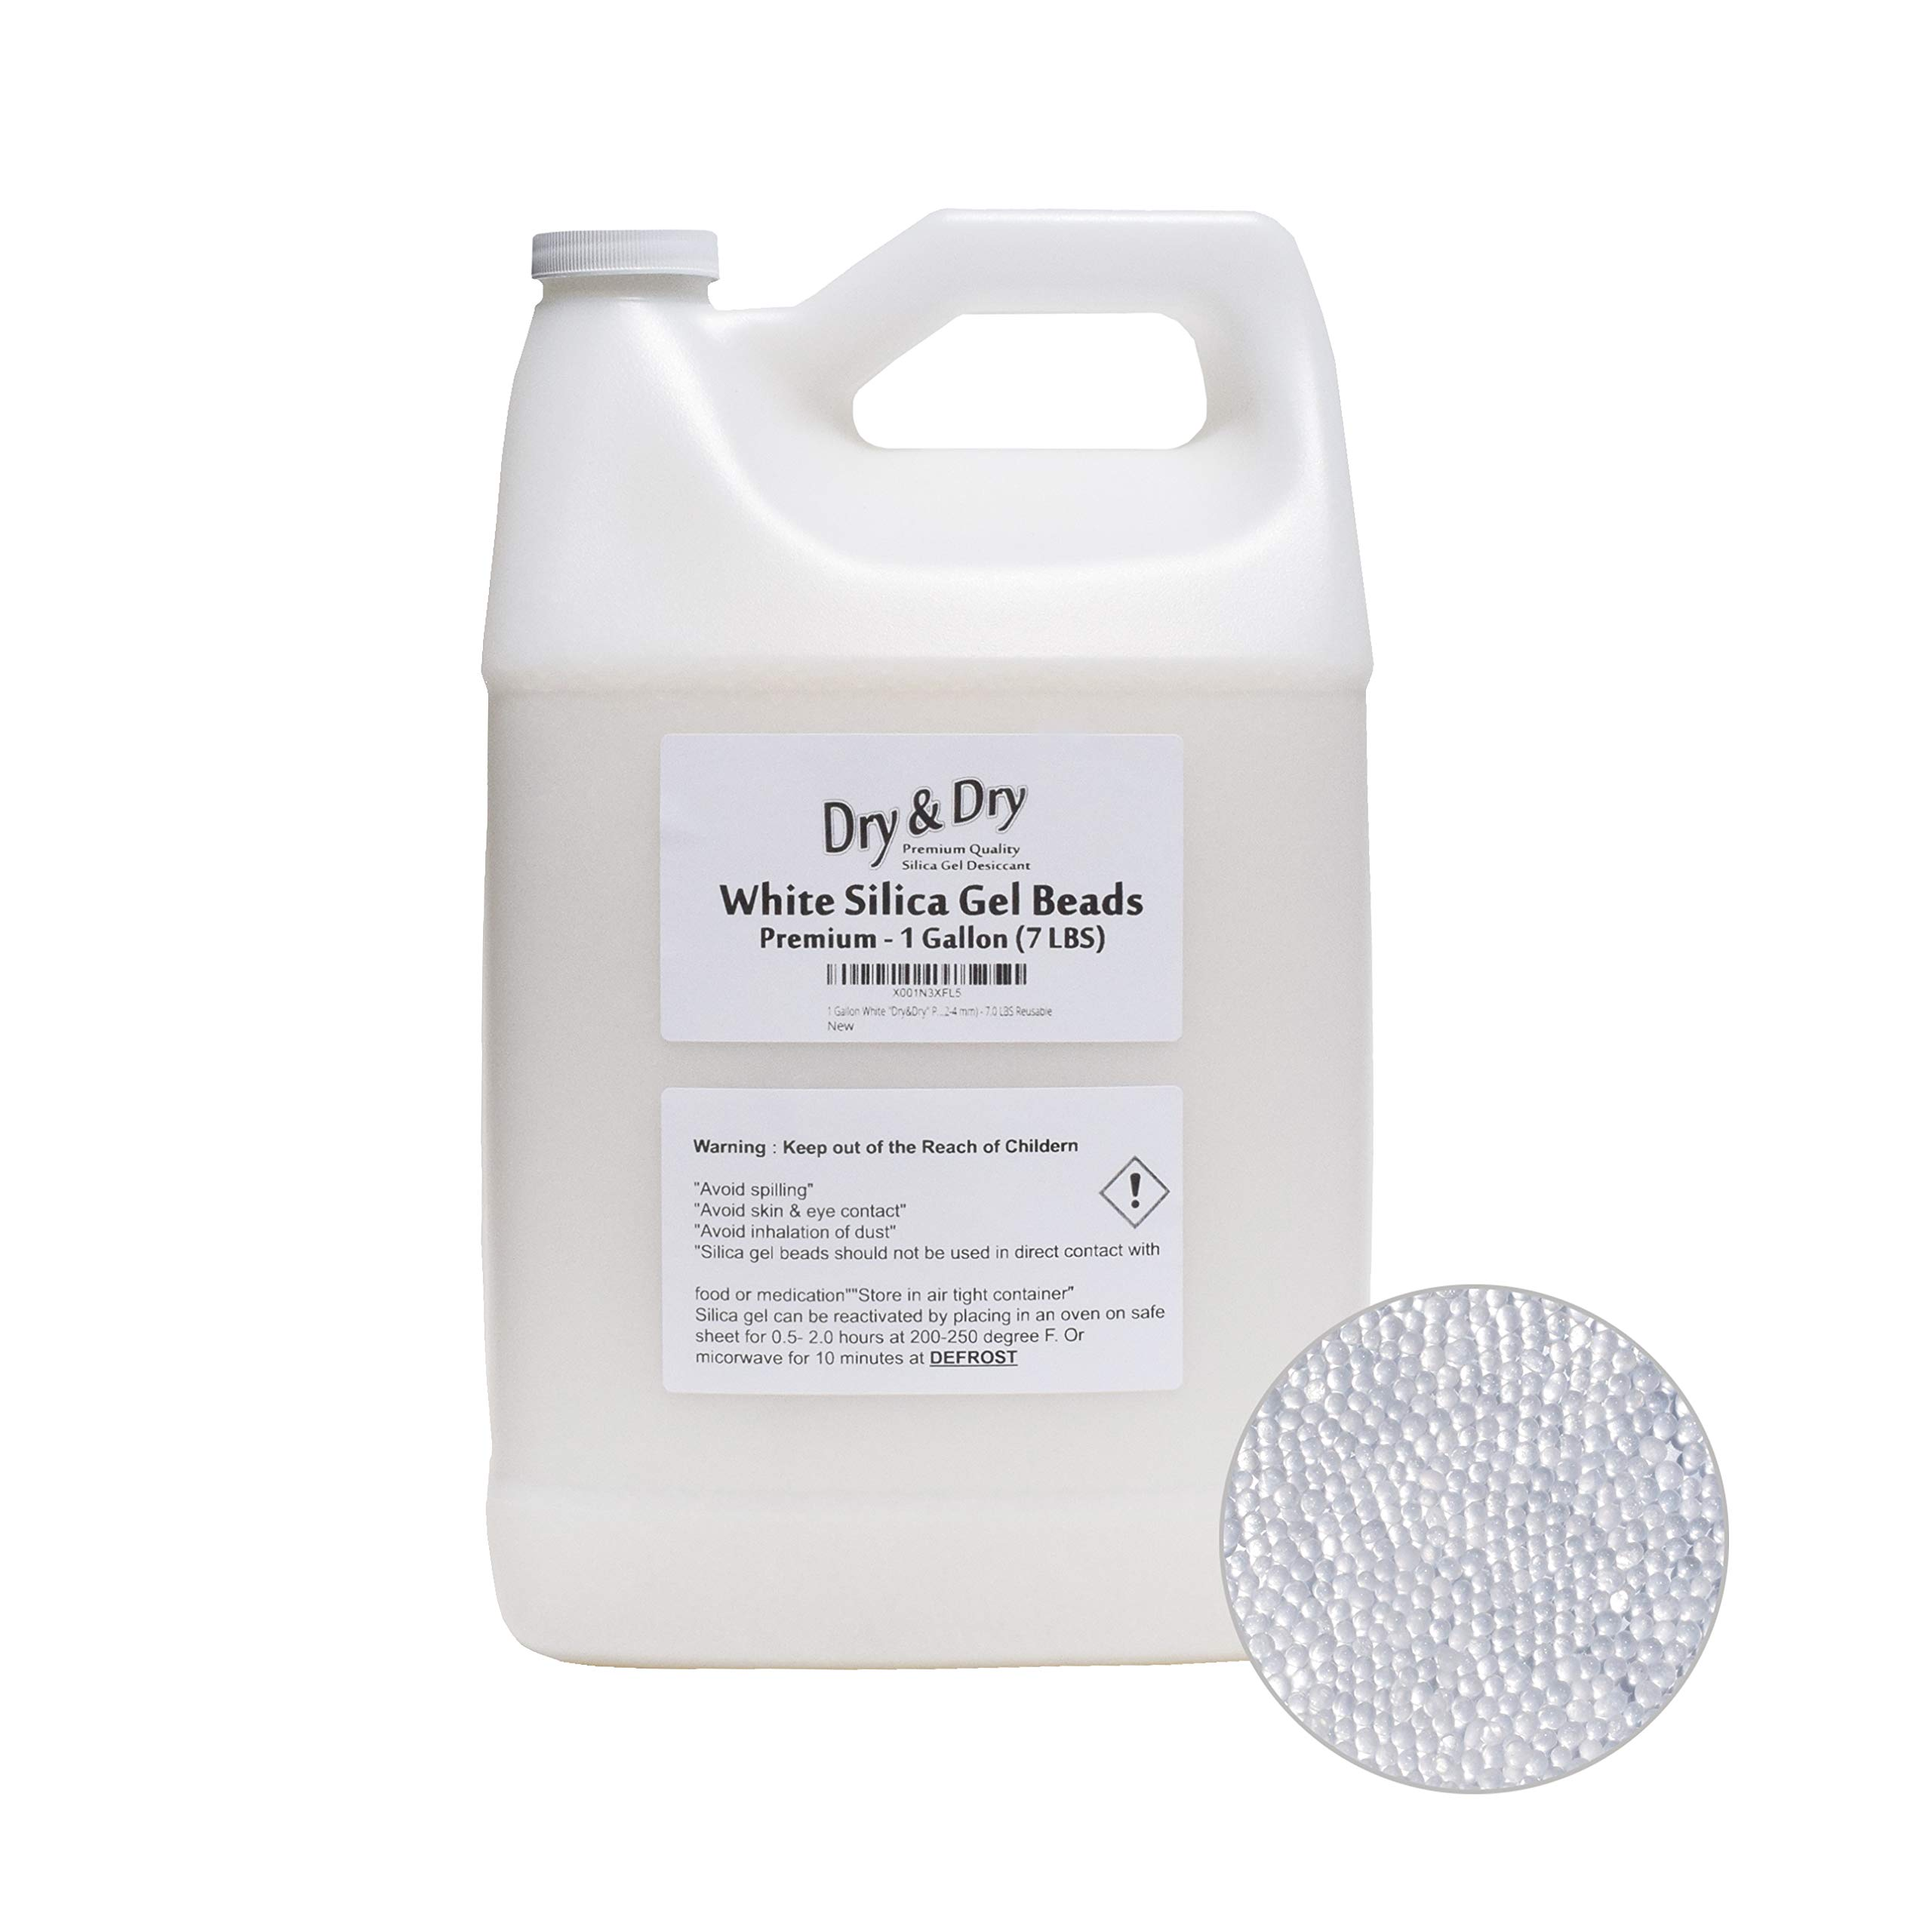 Dry & Dry [7 LBS Premium Pure & Safe White Silica Gel Desiccant Beads(Industry Standard 2-4 mm) - Rechargeable Silica Beads